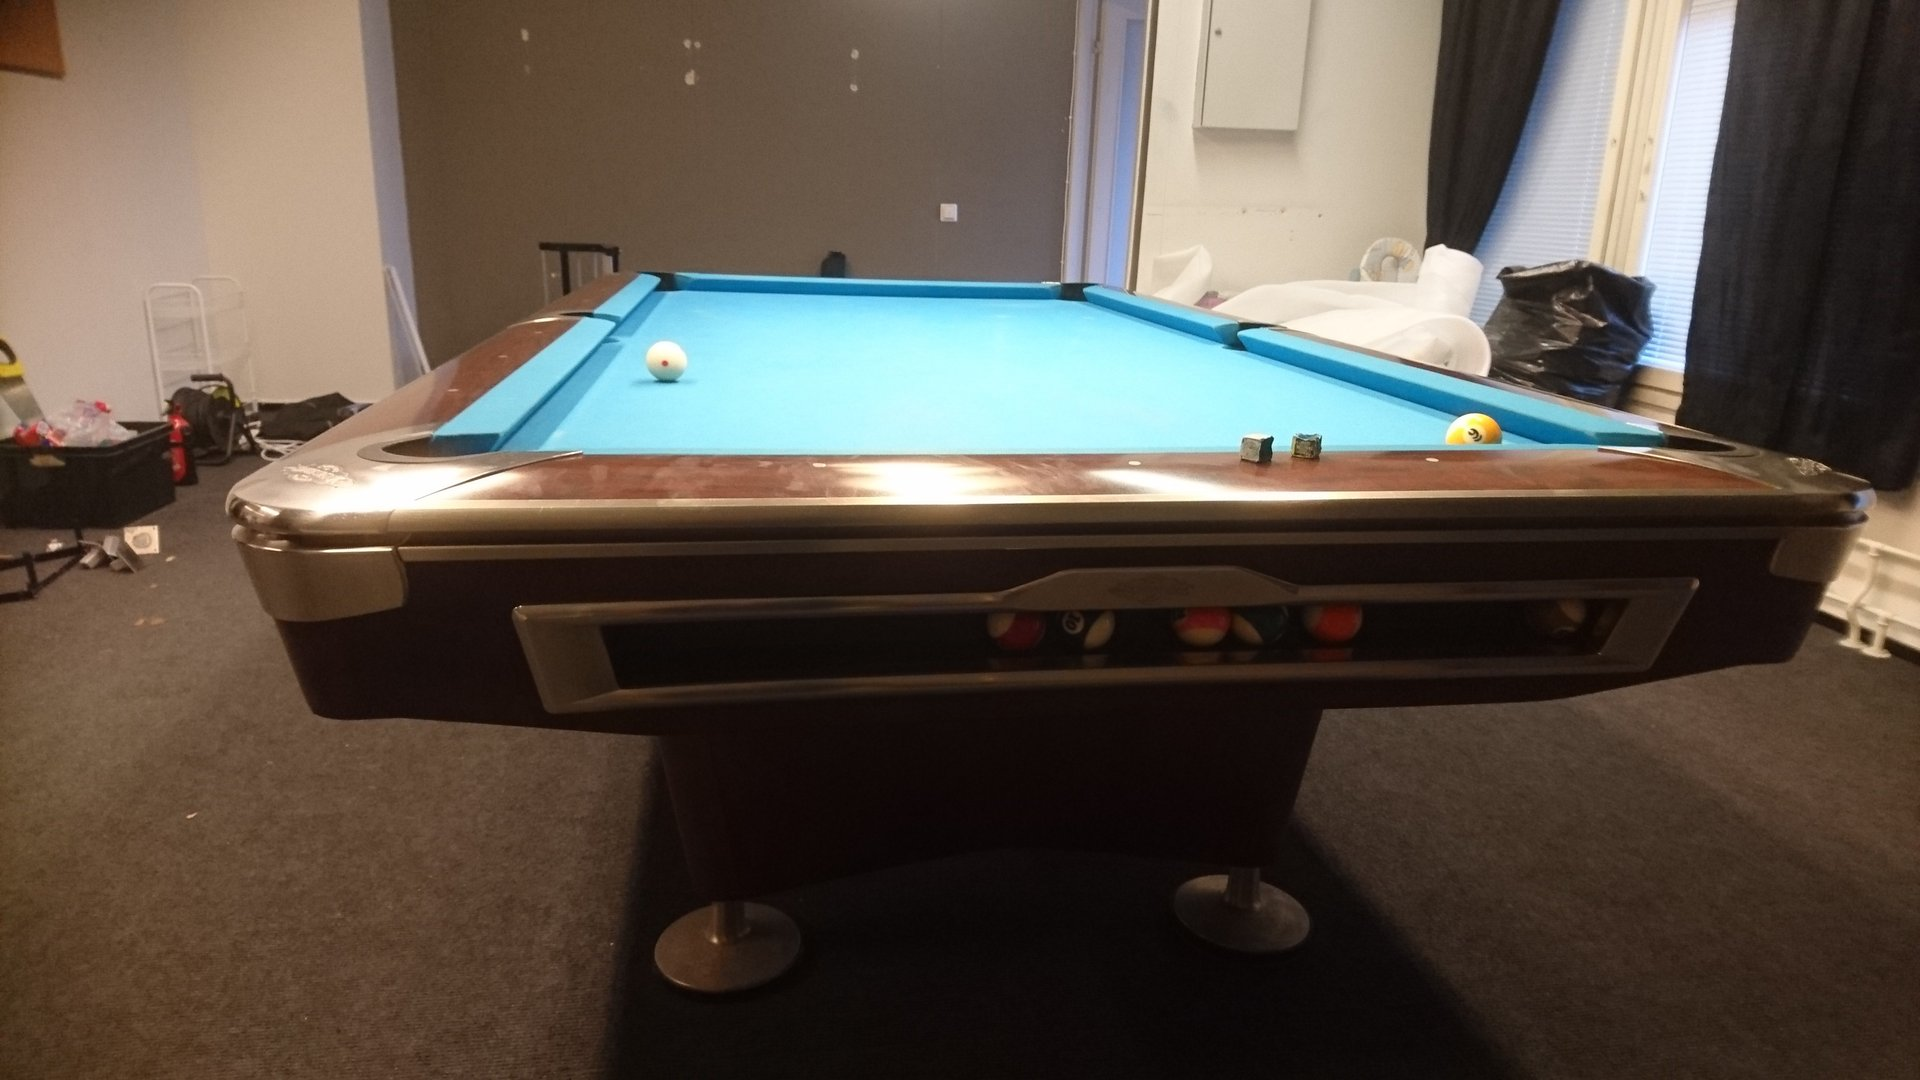 Brunswick gold crown v pool table second hand suomen for Brunswick pool tables